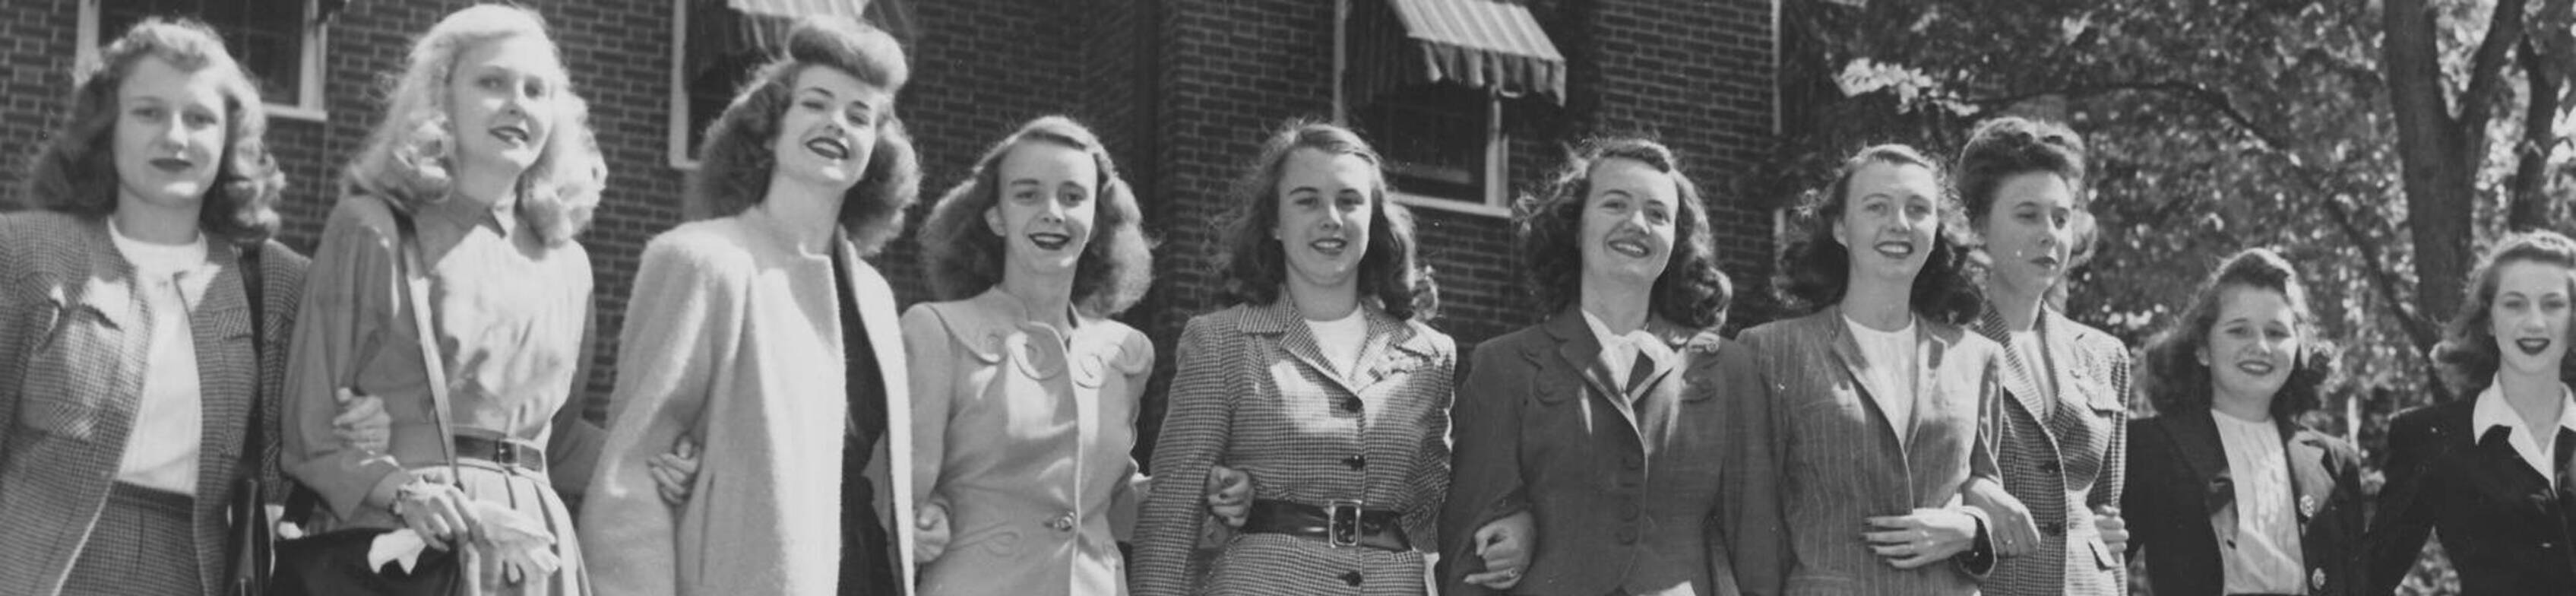 Ursuline college old photo of students in the 1940s